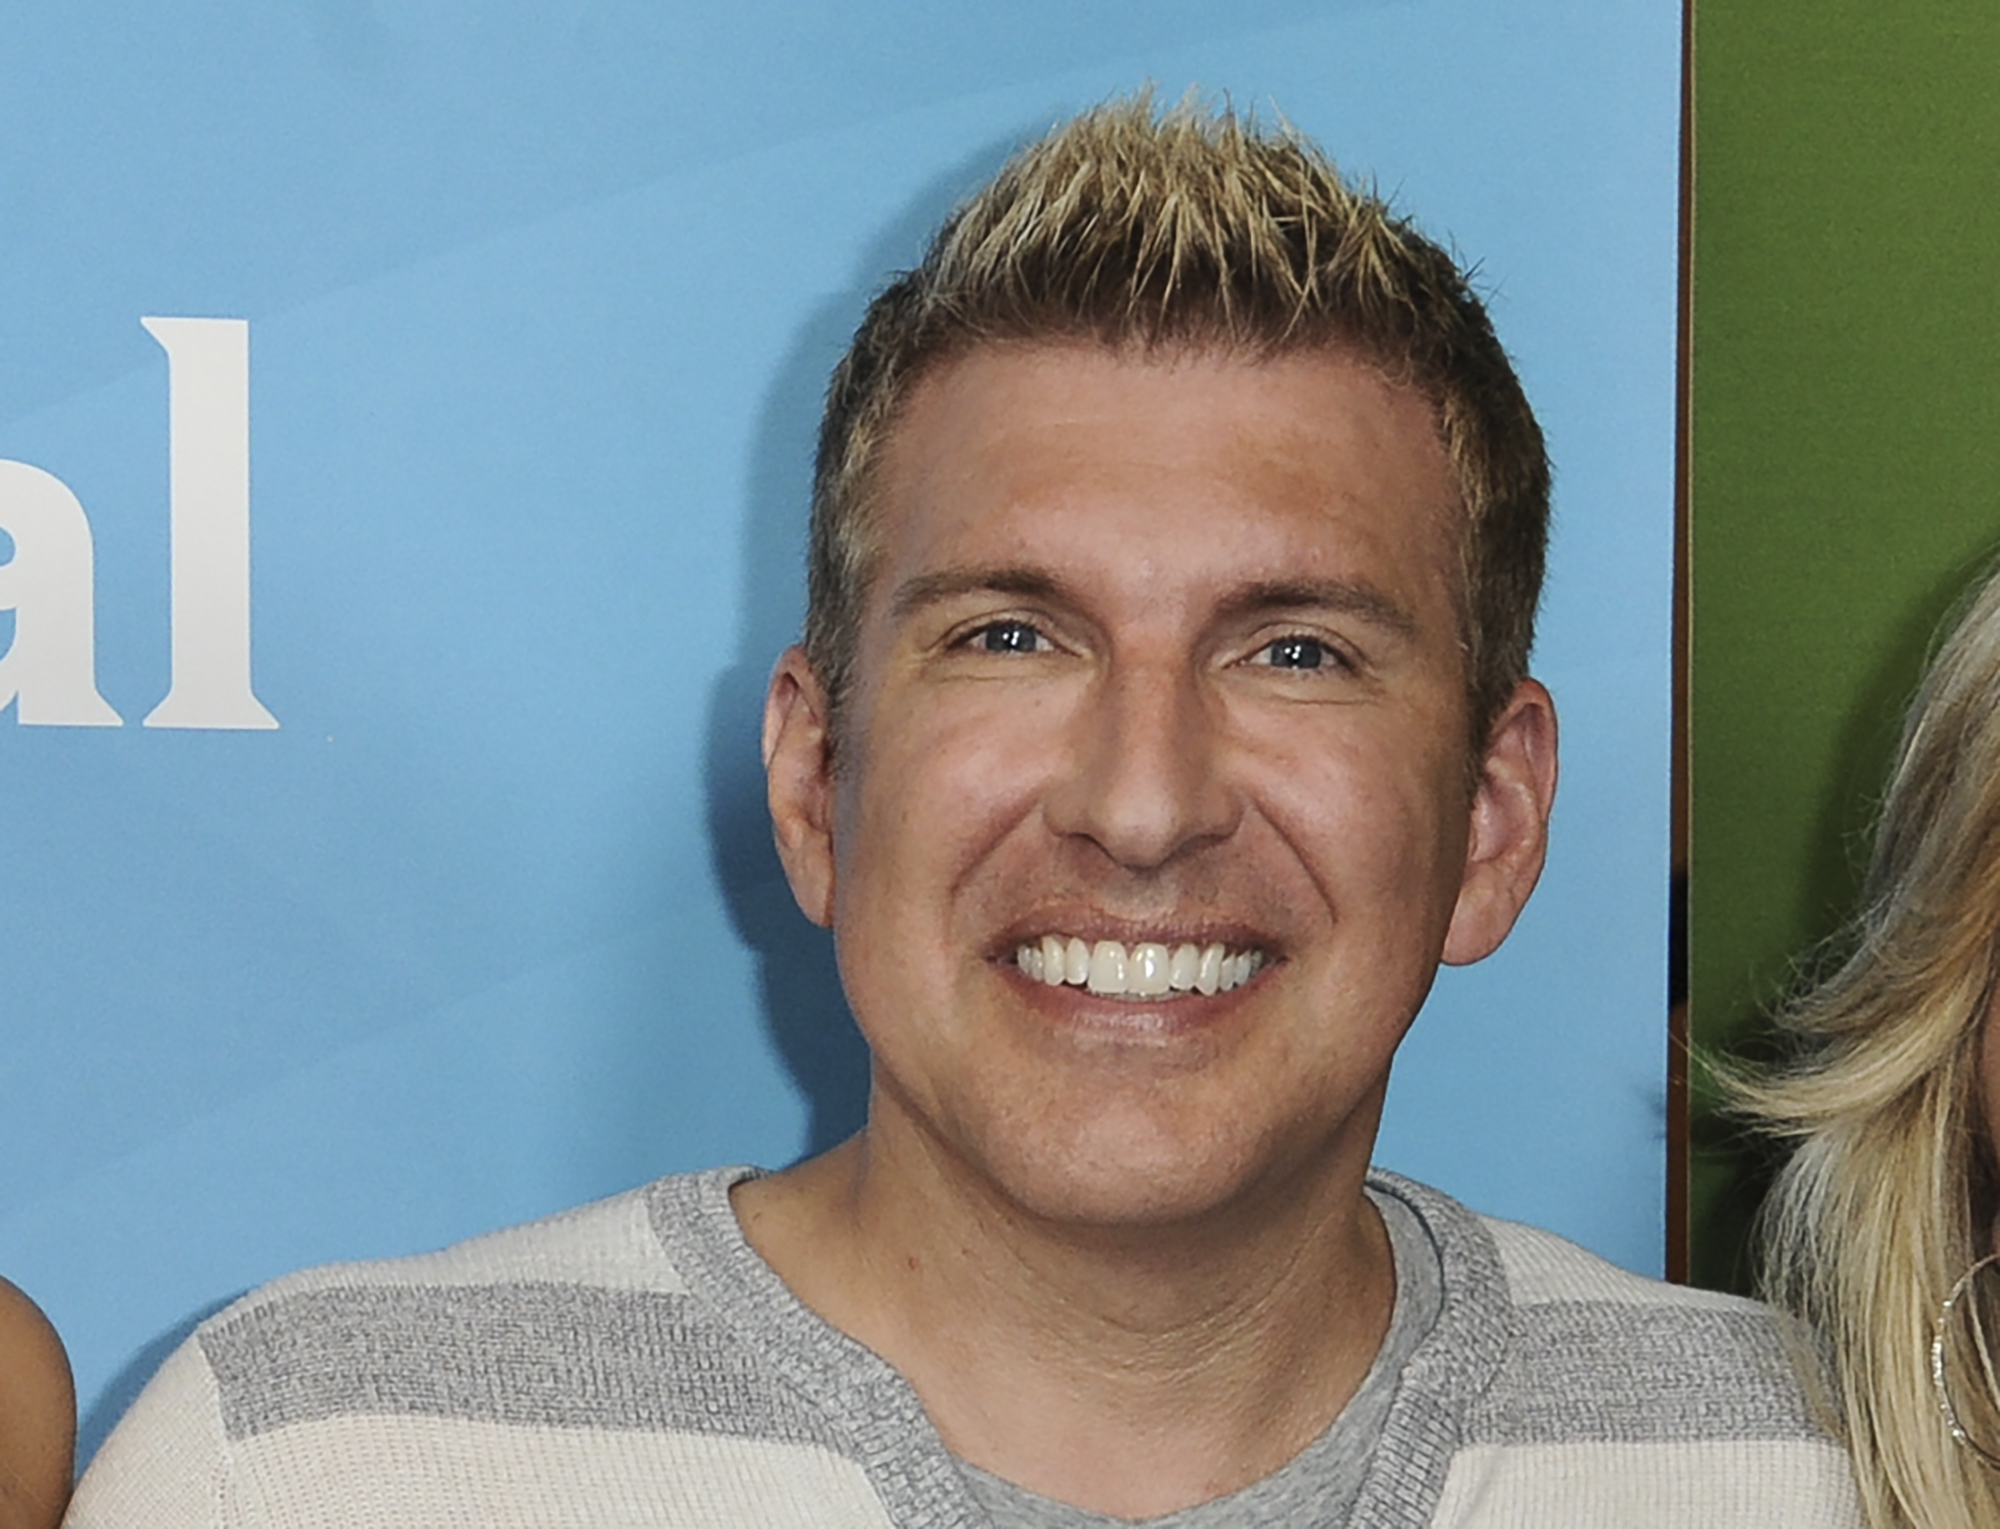 Todd Chrisley attends the NBC 2014 Summer TCA at the Beverly Hilton Hotel in Beverly Hills, California.